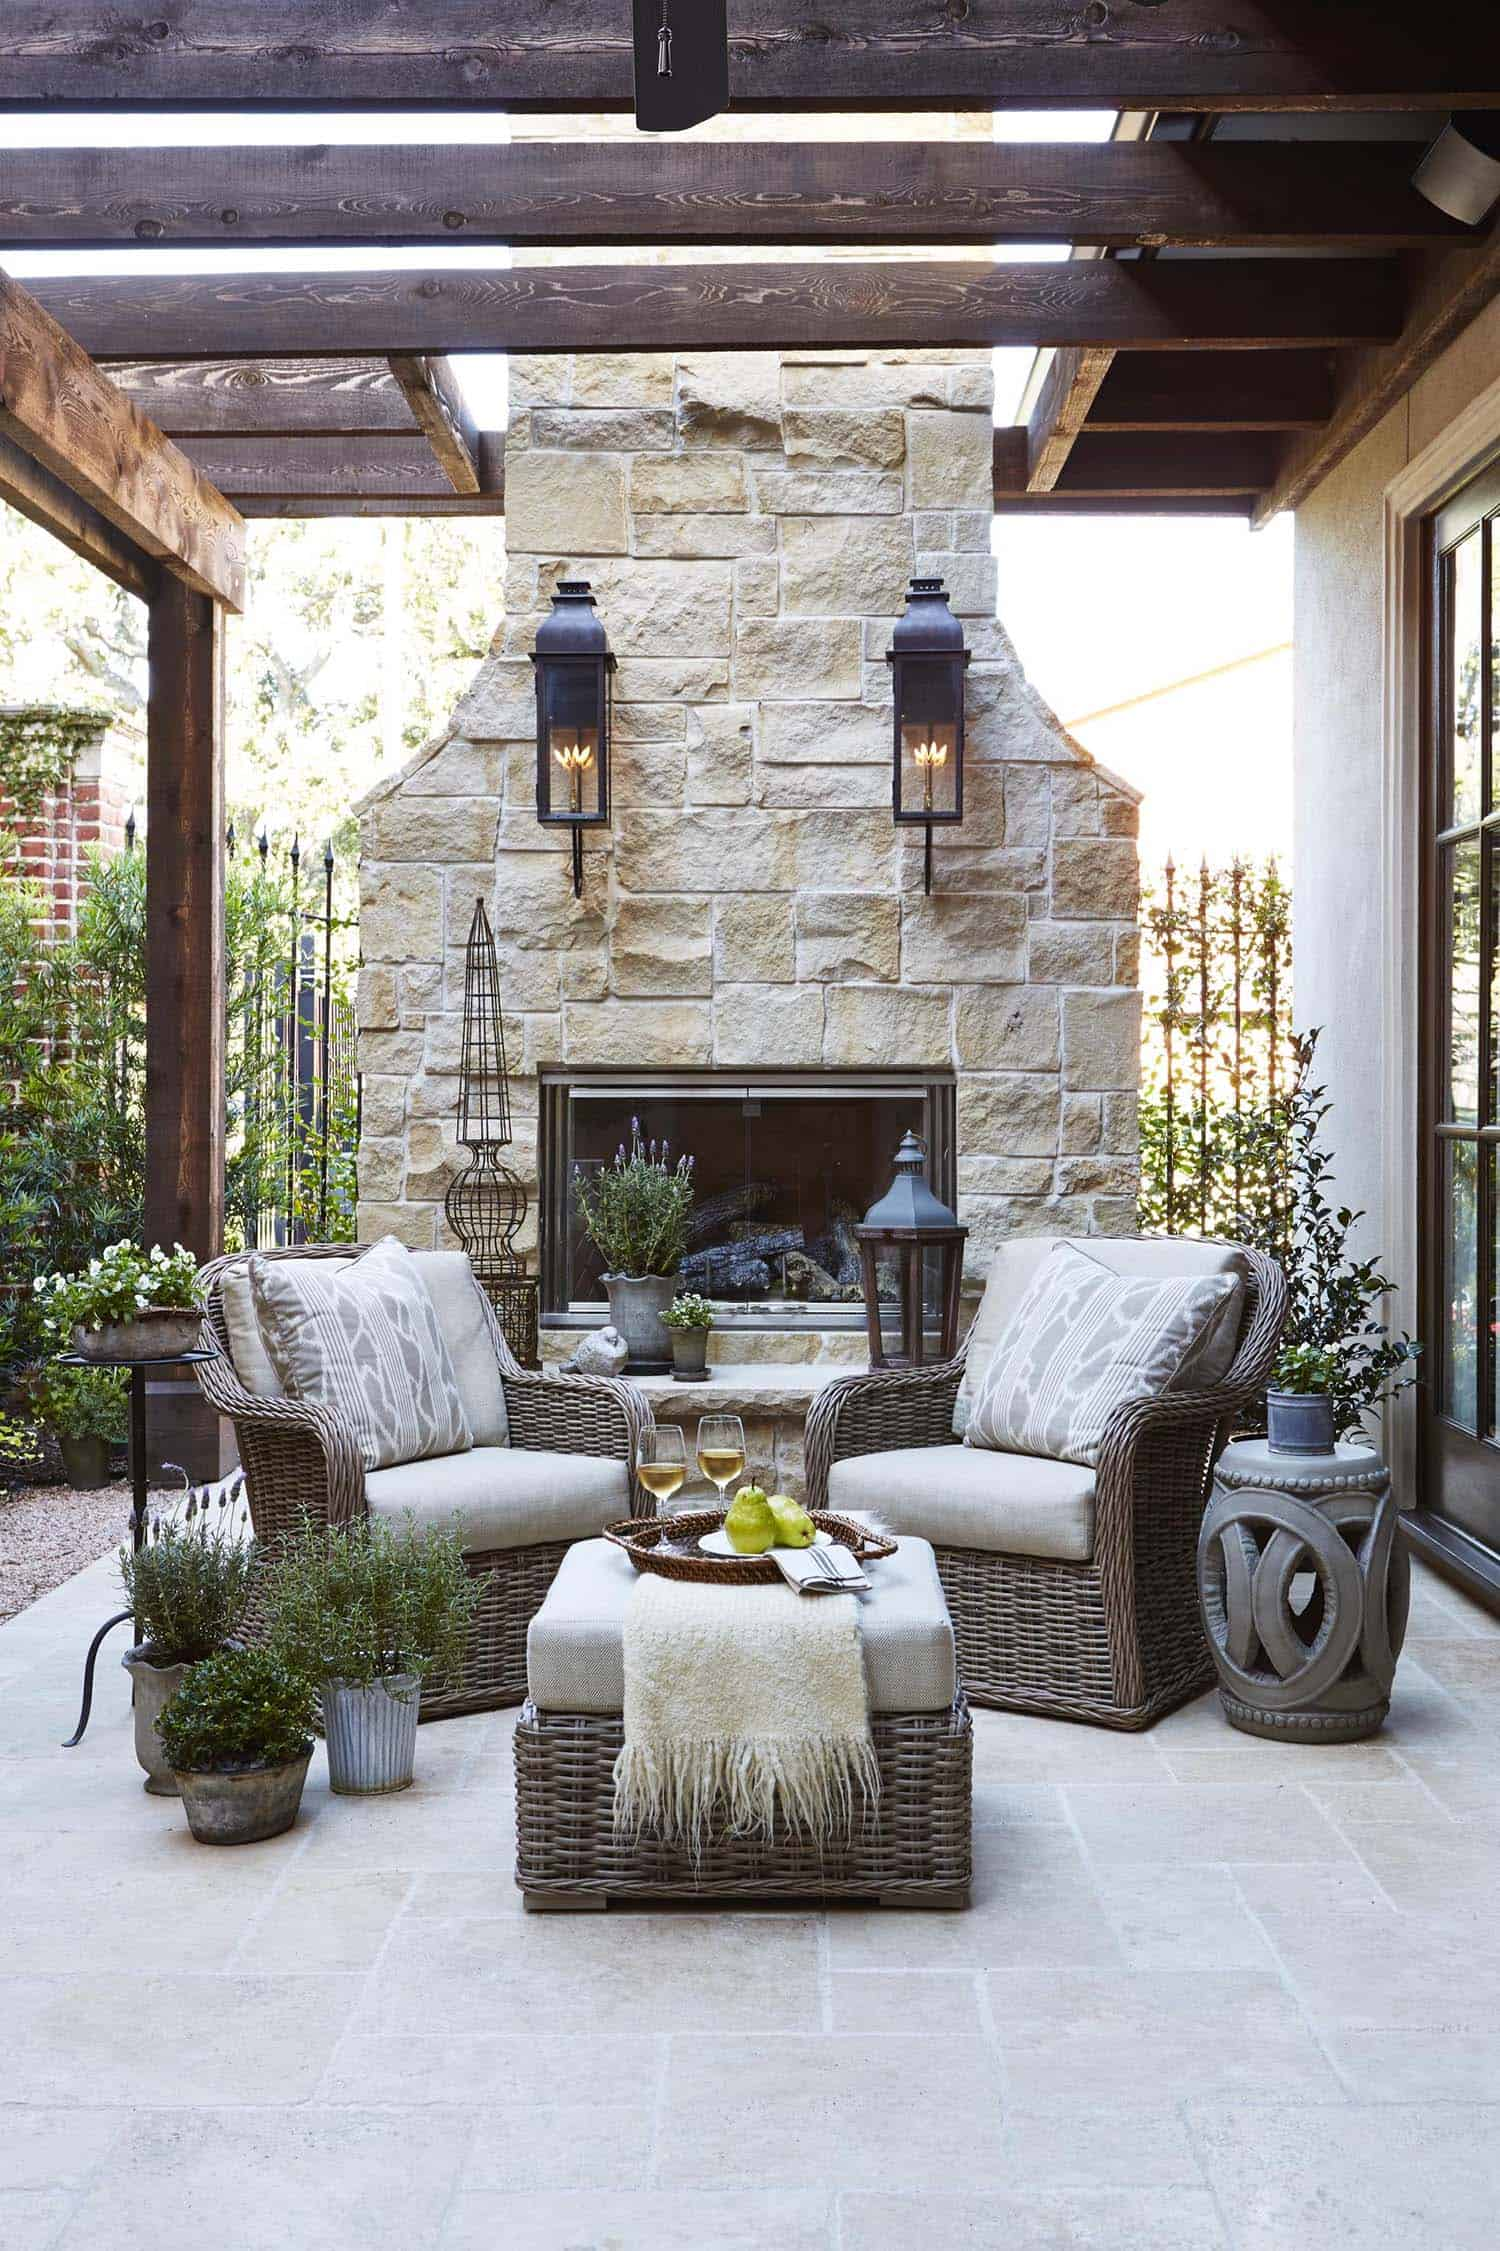 30+ Irresistible outdoor fireplace ideas that will leave ... on Outdoor Fireplaces Ideas  id=67890